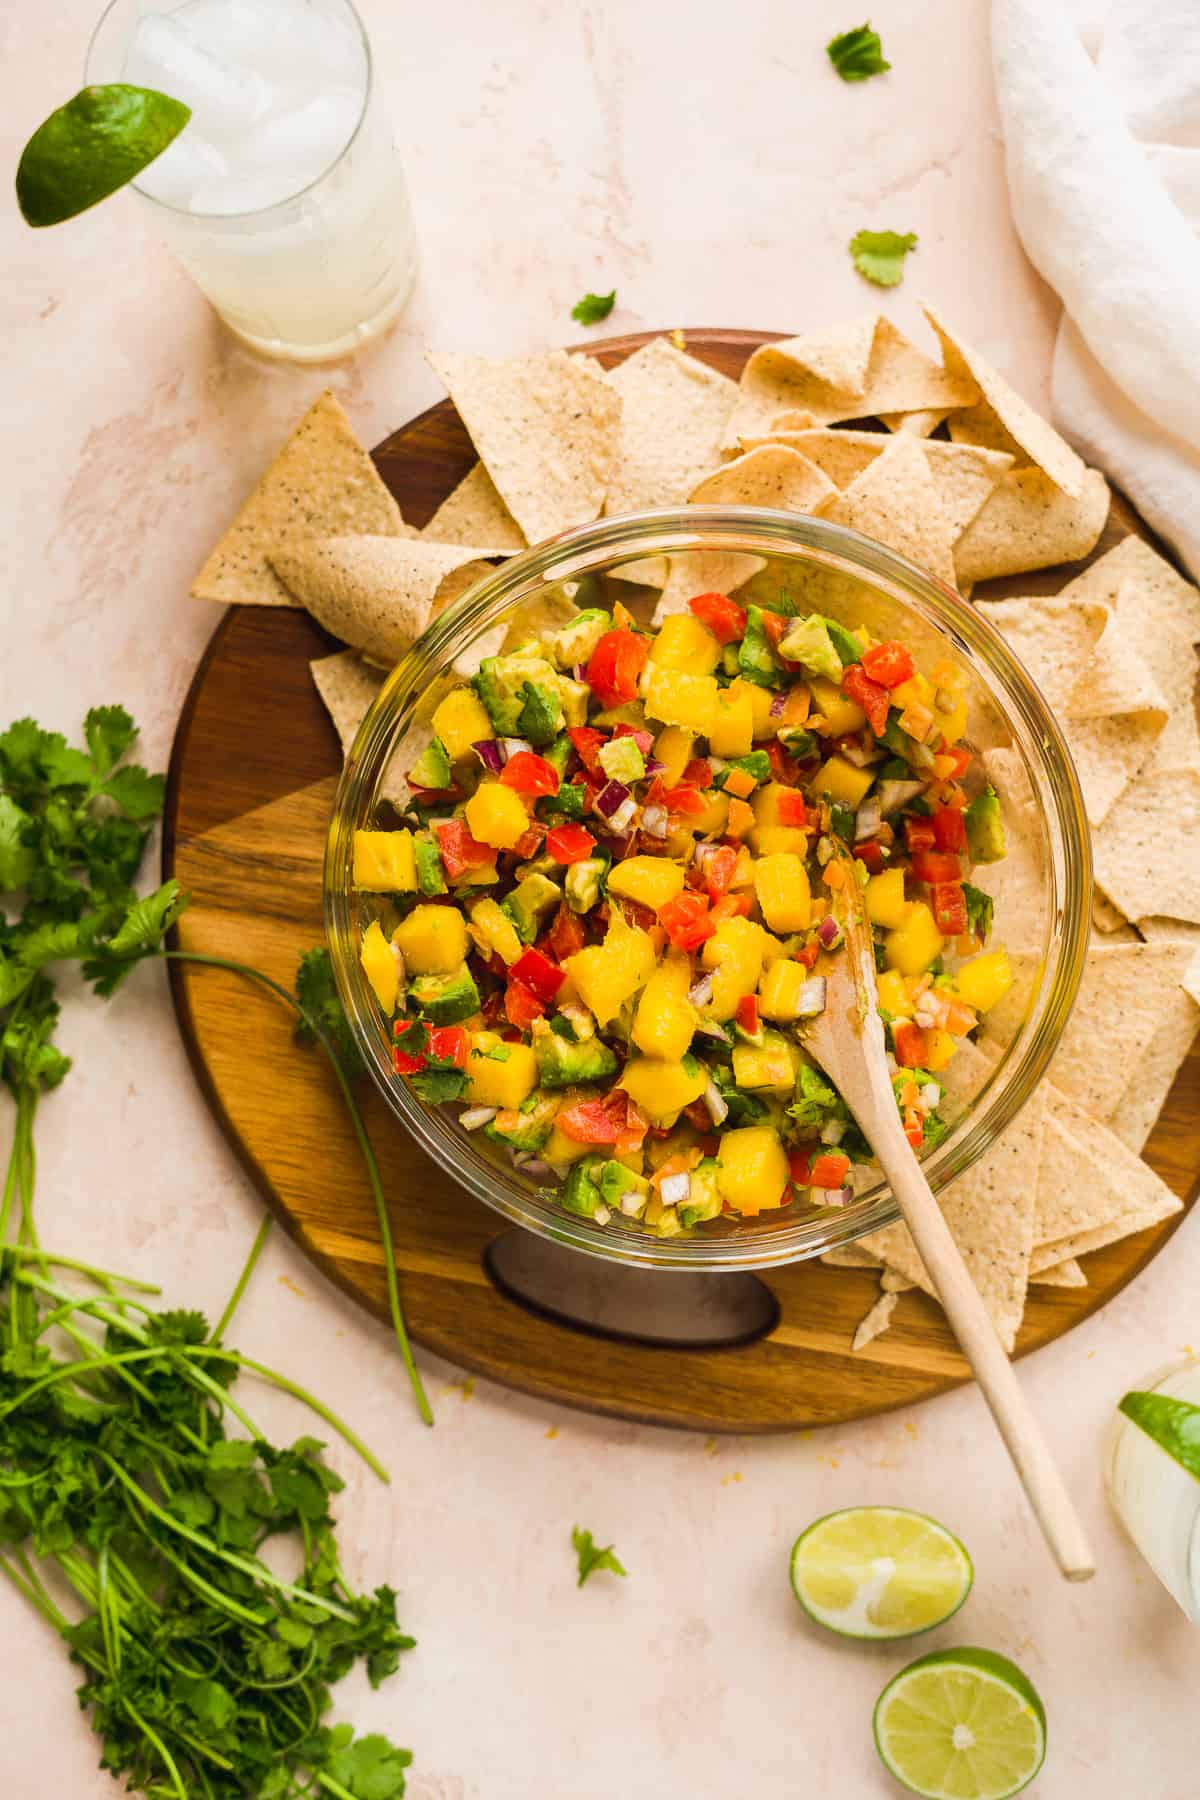 Bowl of chunky mango salsa with avocados with chips and cilantro on the side.